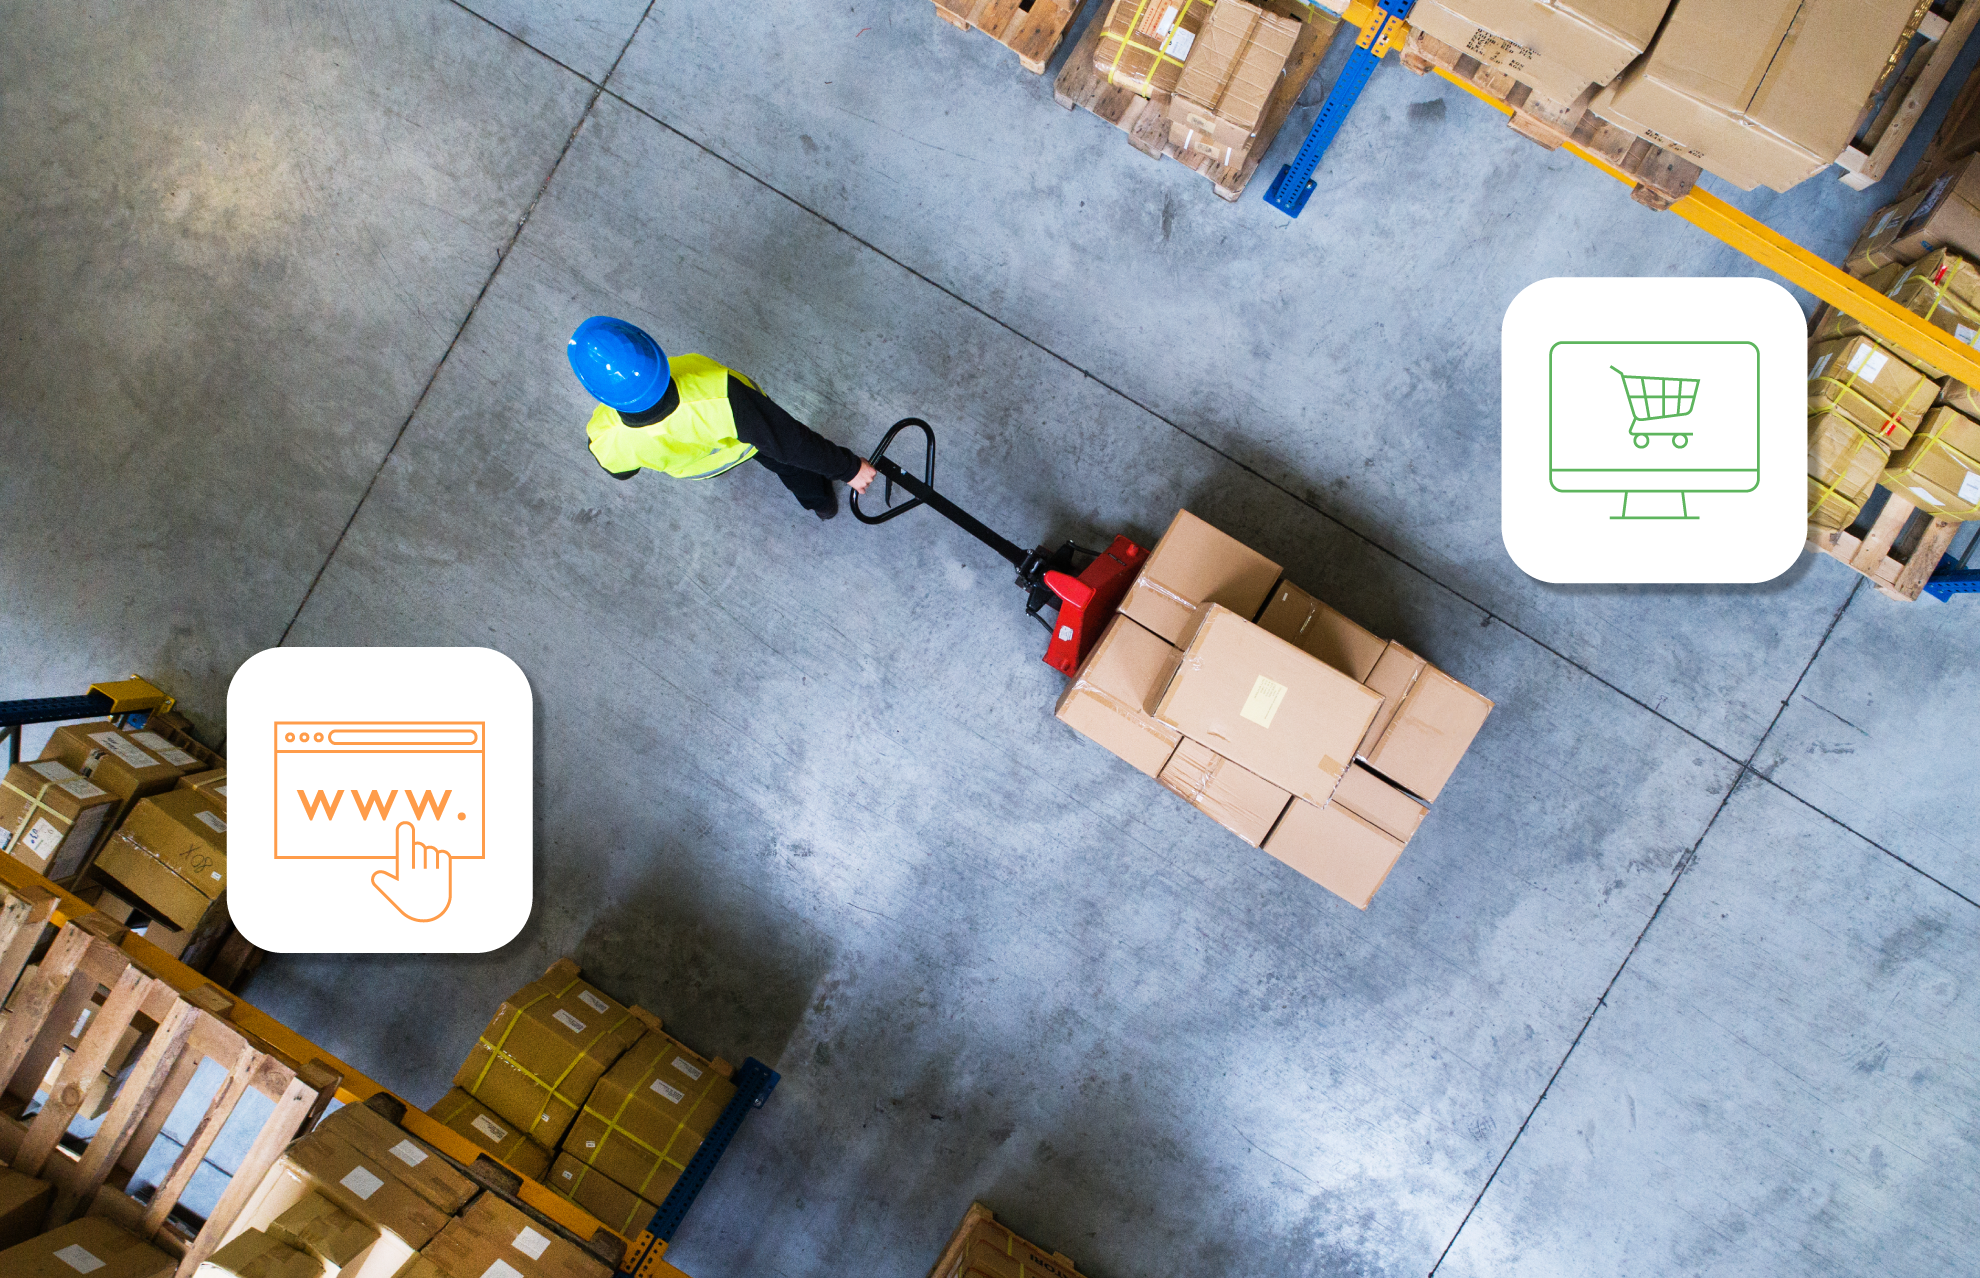 Wholesale ecommerce in 2020 and beyond